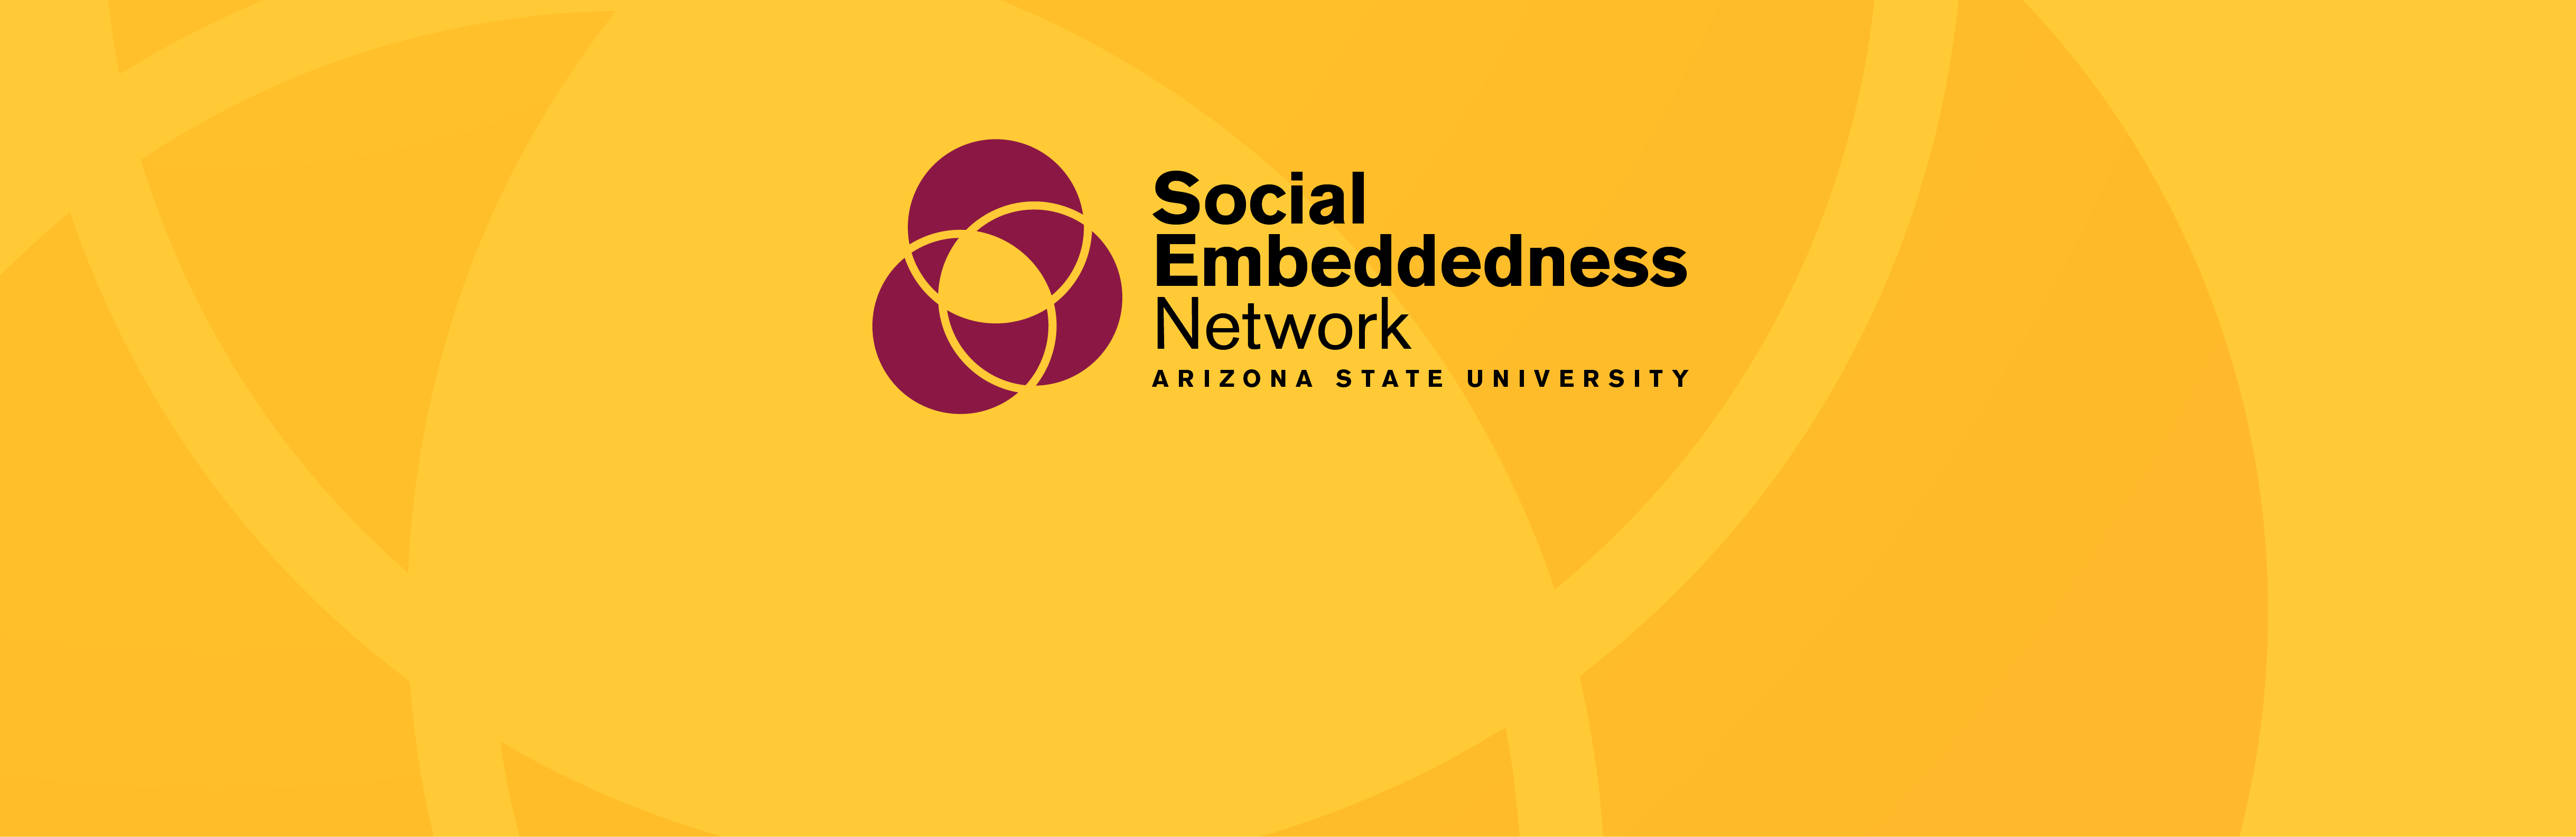 2018 Social Embeddedness Network Conference